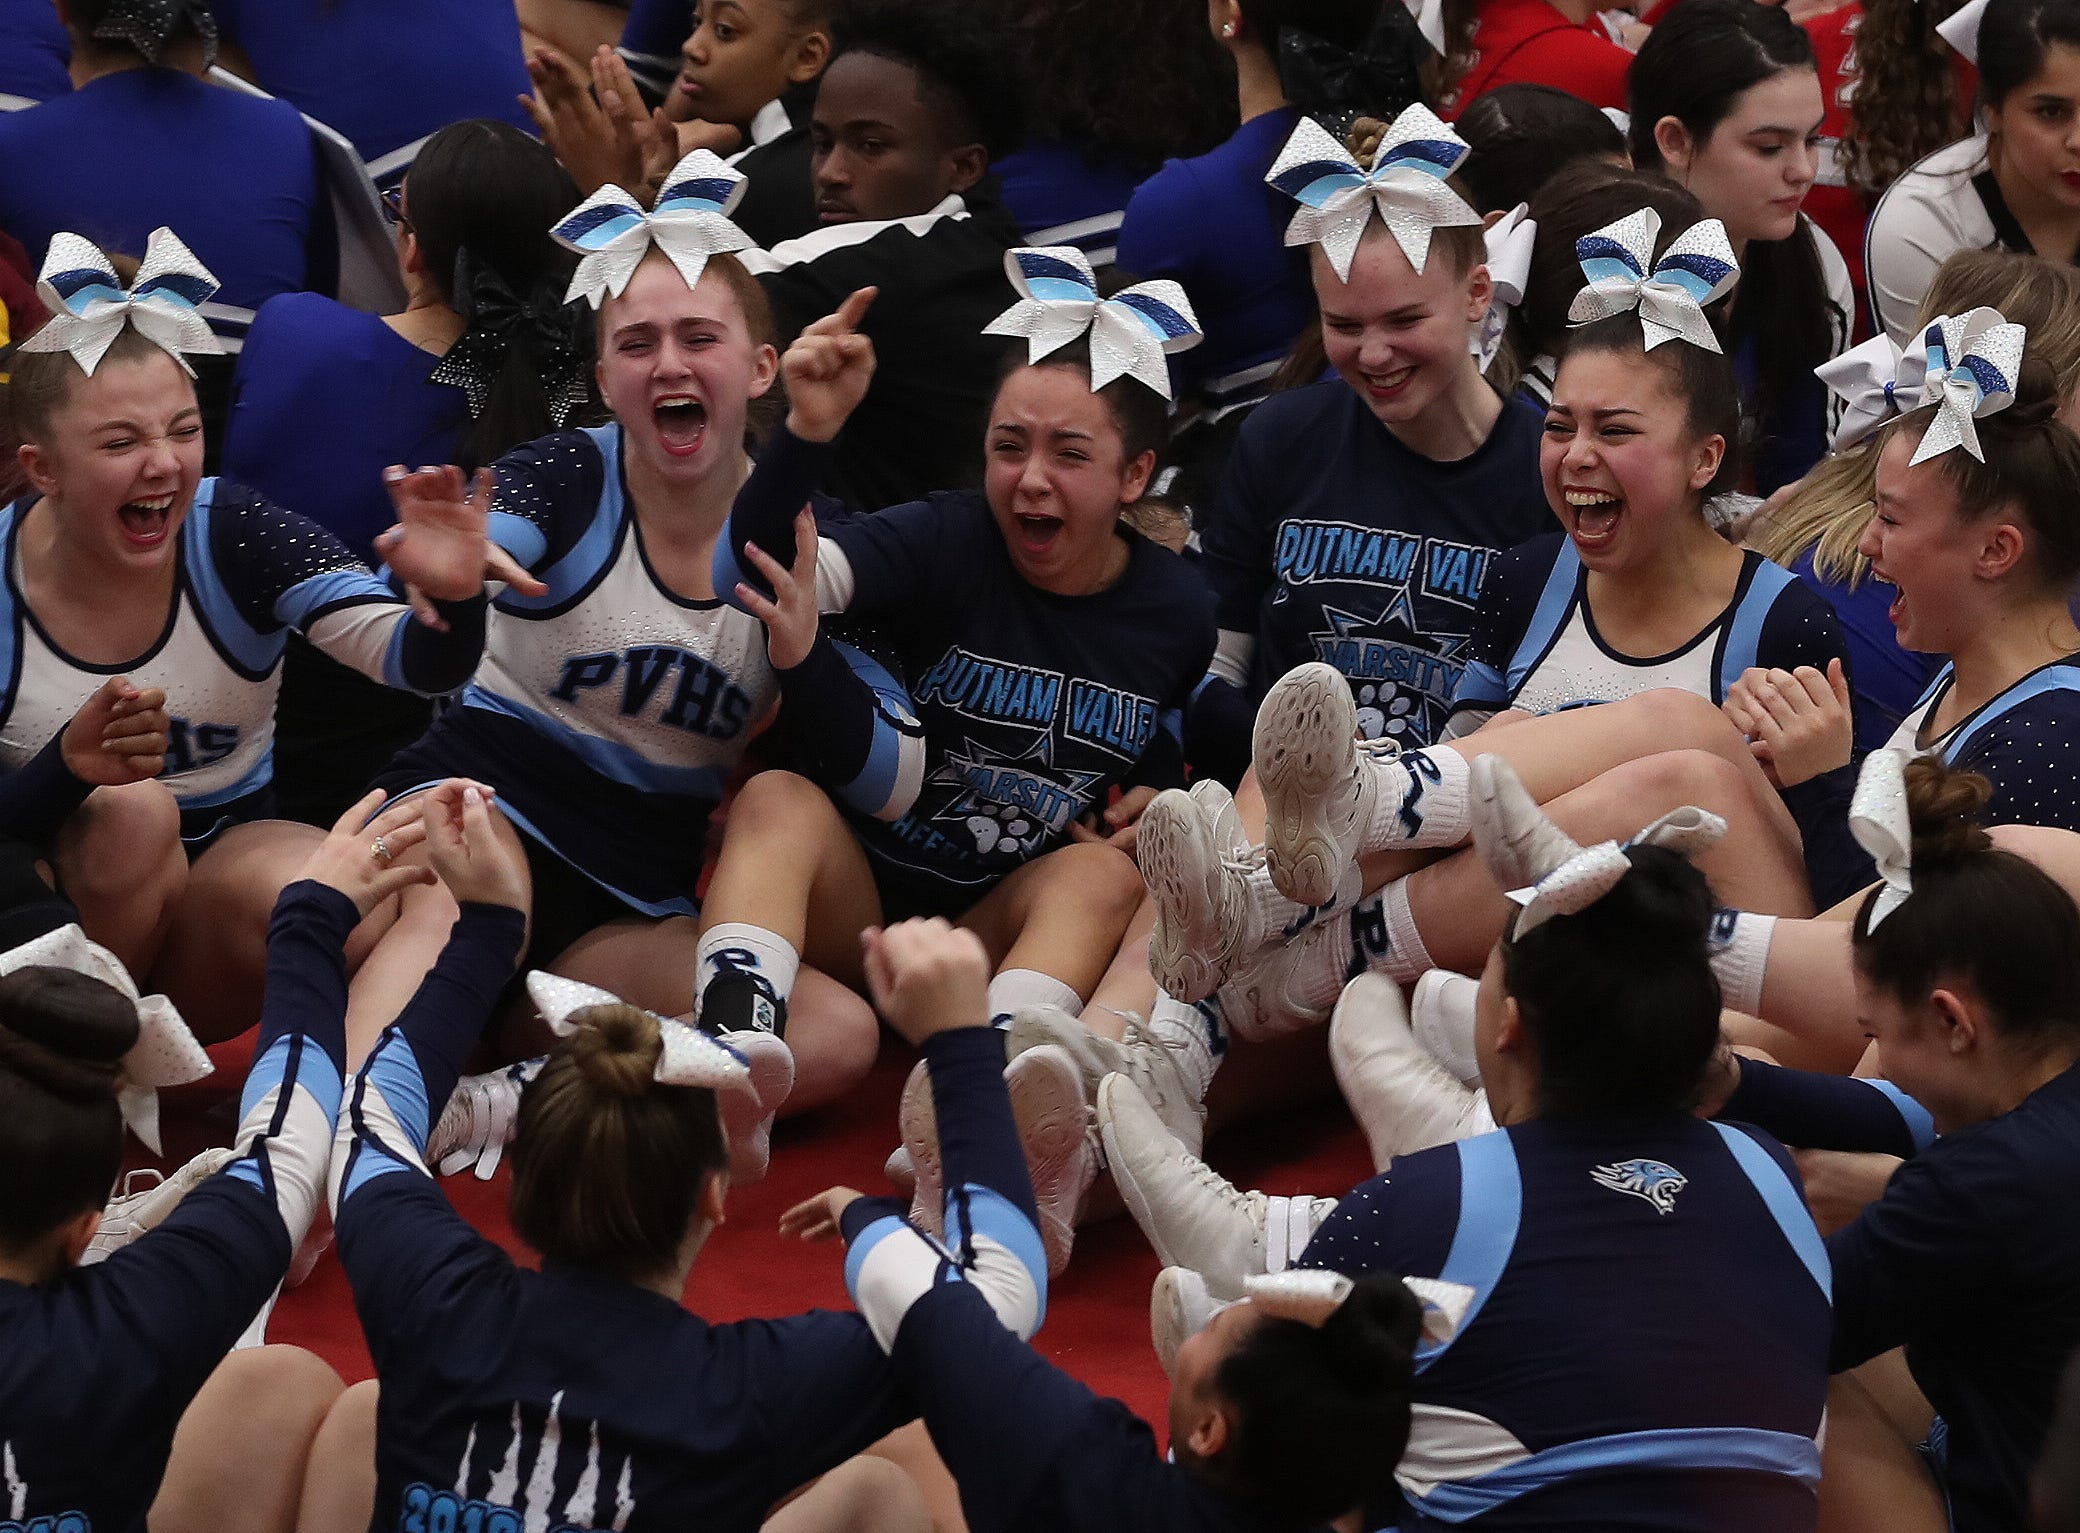 Putnam Valley cheerleaders react after learning they came in first place in their division during the Section 1 cheerleading championships at Arlington High School in Freedom Plains Feb. 16, 2019.